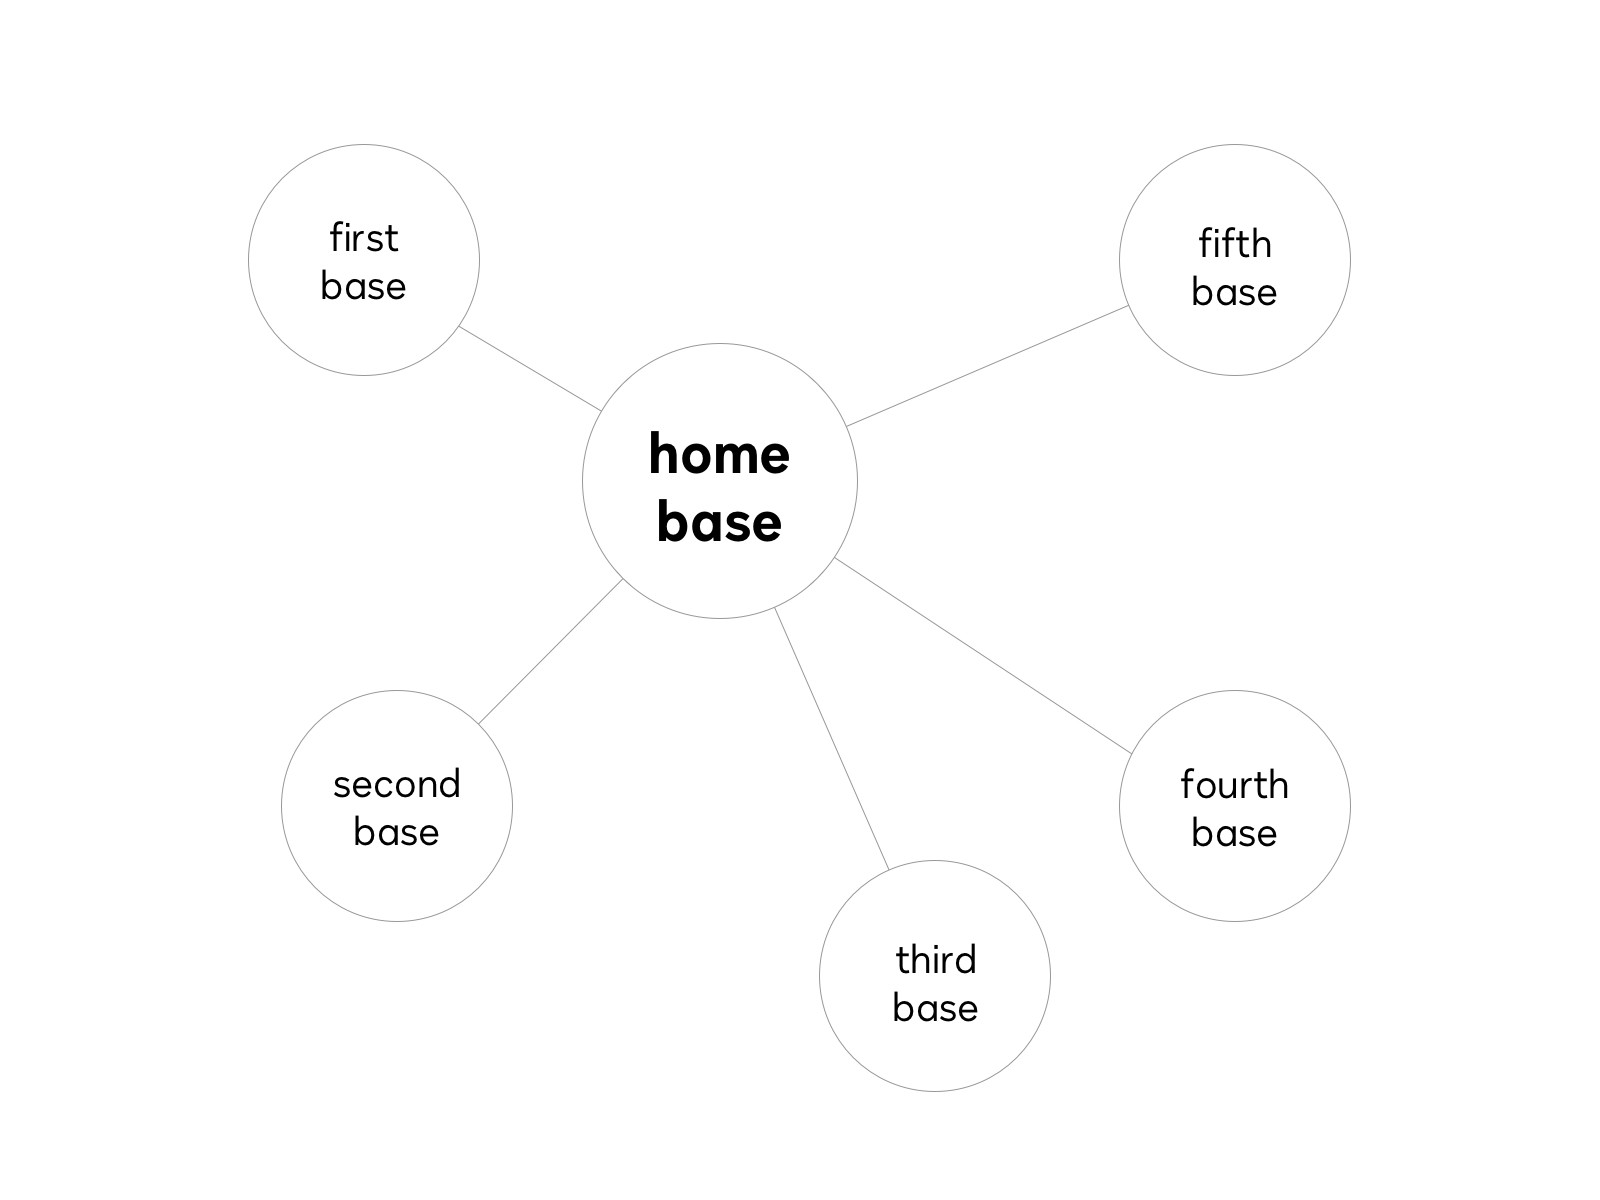 Hub and spoke style diagram of home base